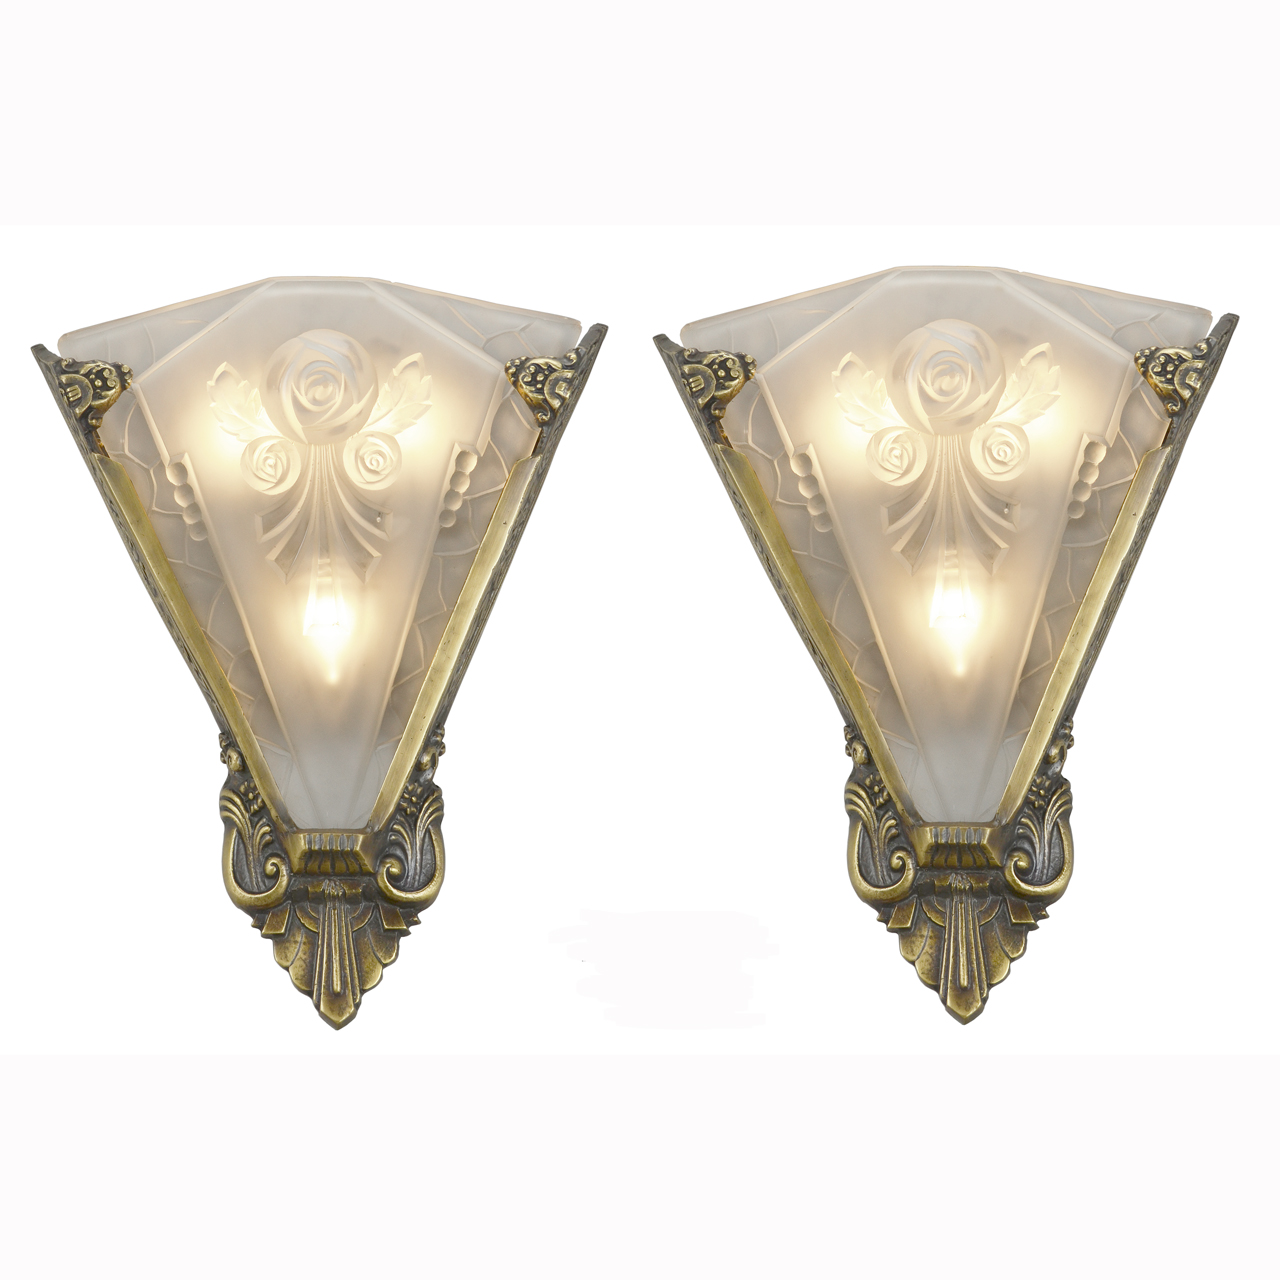 Pair of Large Wall Sconces Lighting with Antique French ... on Vintage Wall Sconces id=77307